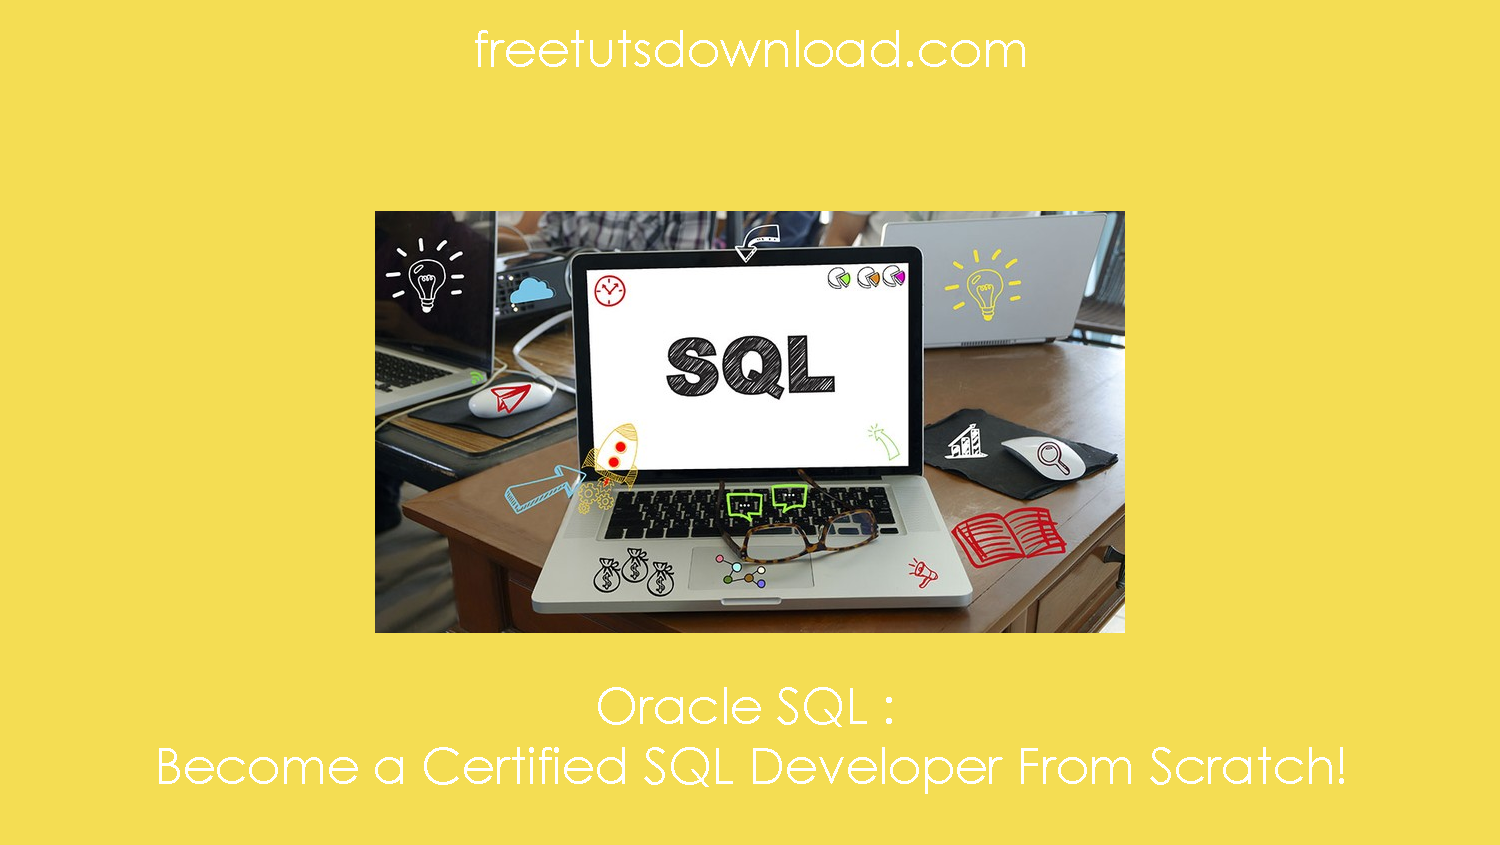 Oracle SQL : Become a Certified SQL Developer From Scratch! free download